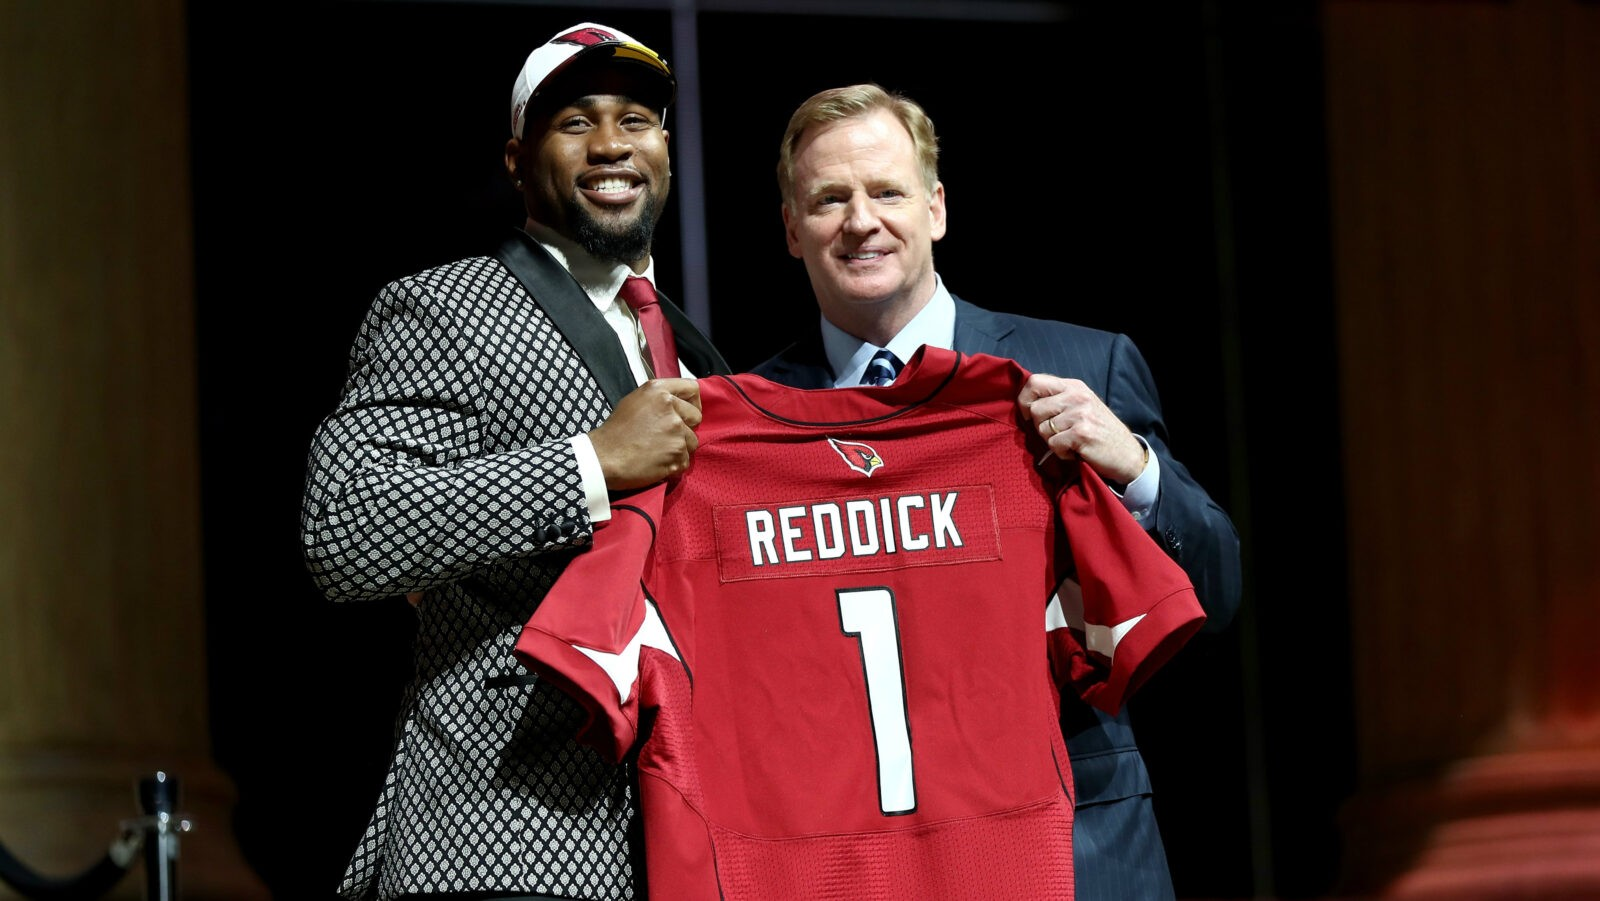 Hassan Reddick Arizona Cardinals